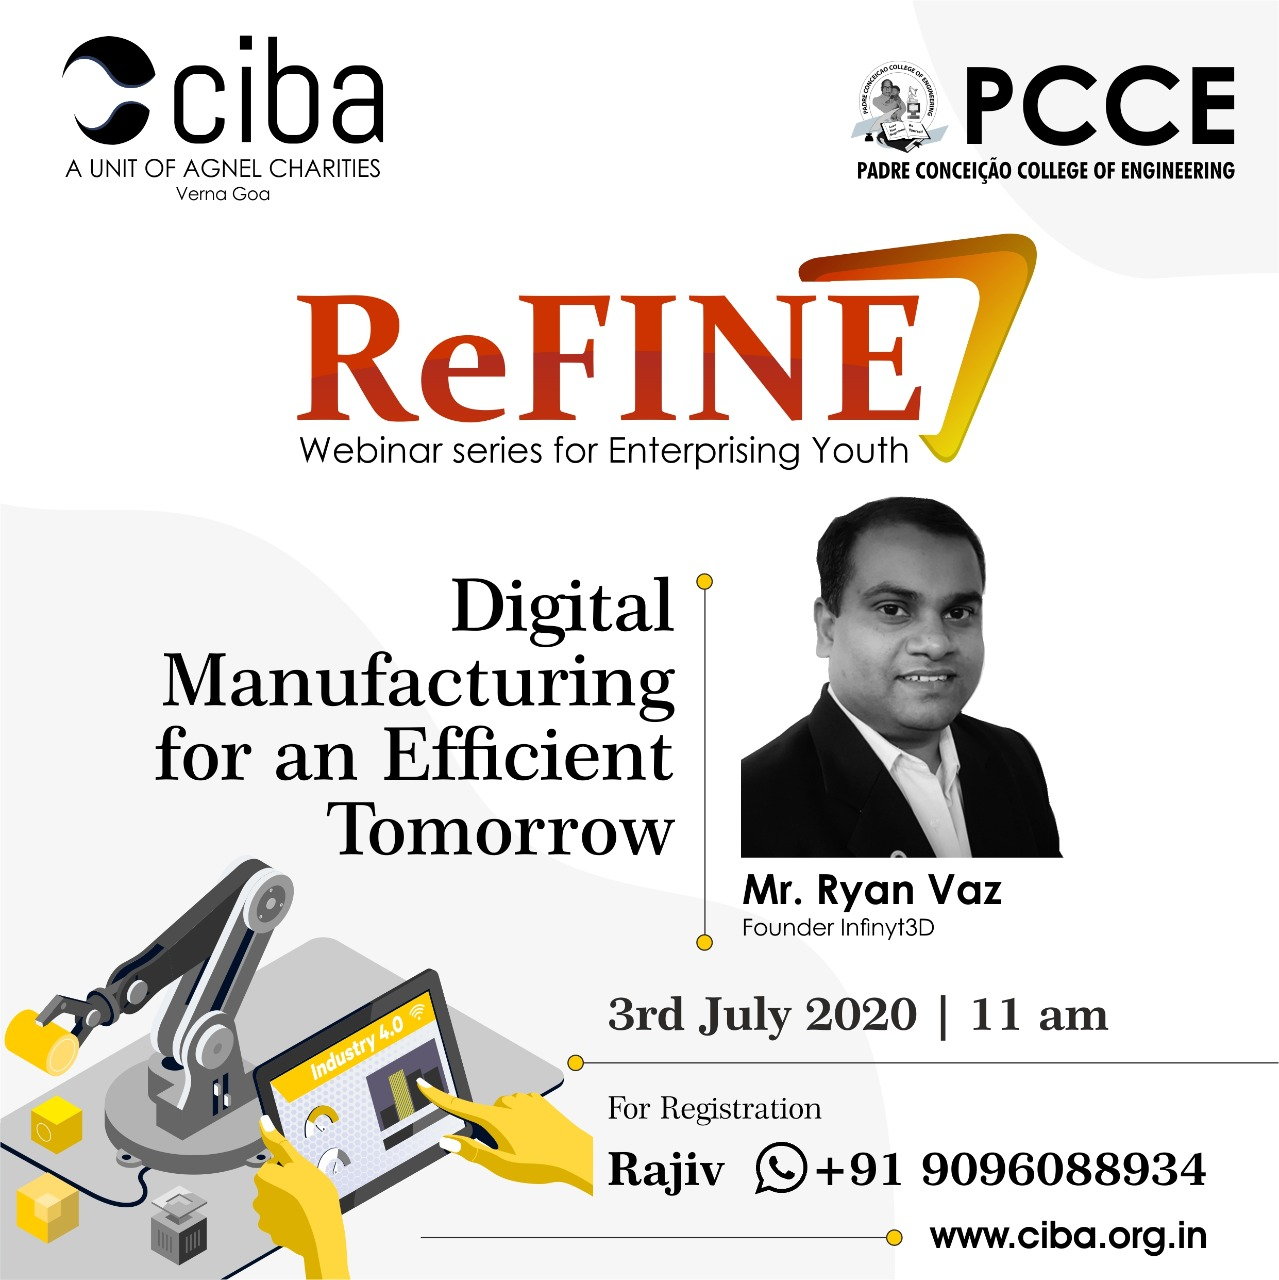 ciba-ReFINE- Digital Manufacturing for an Efficient Tomorrow